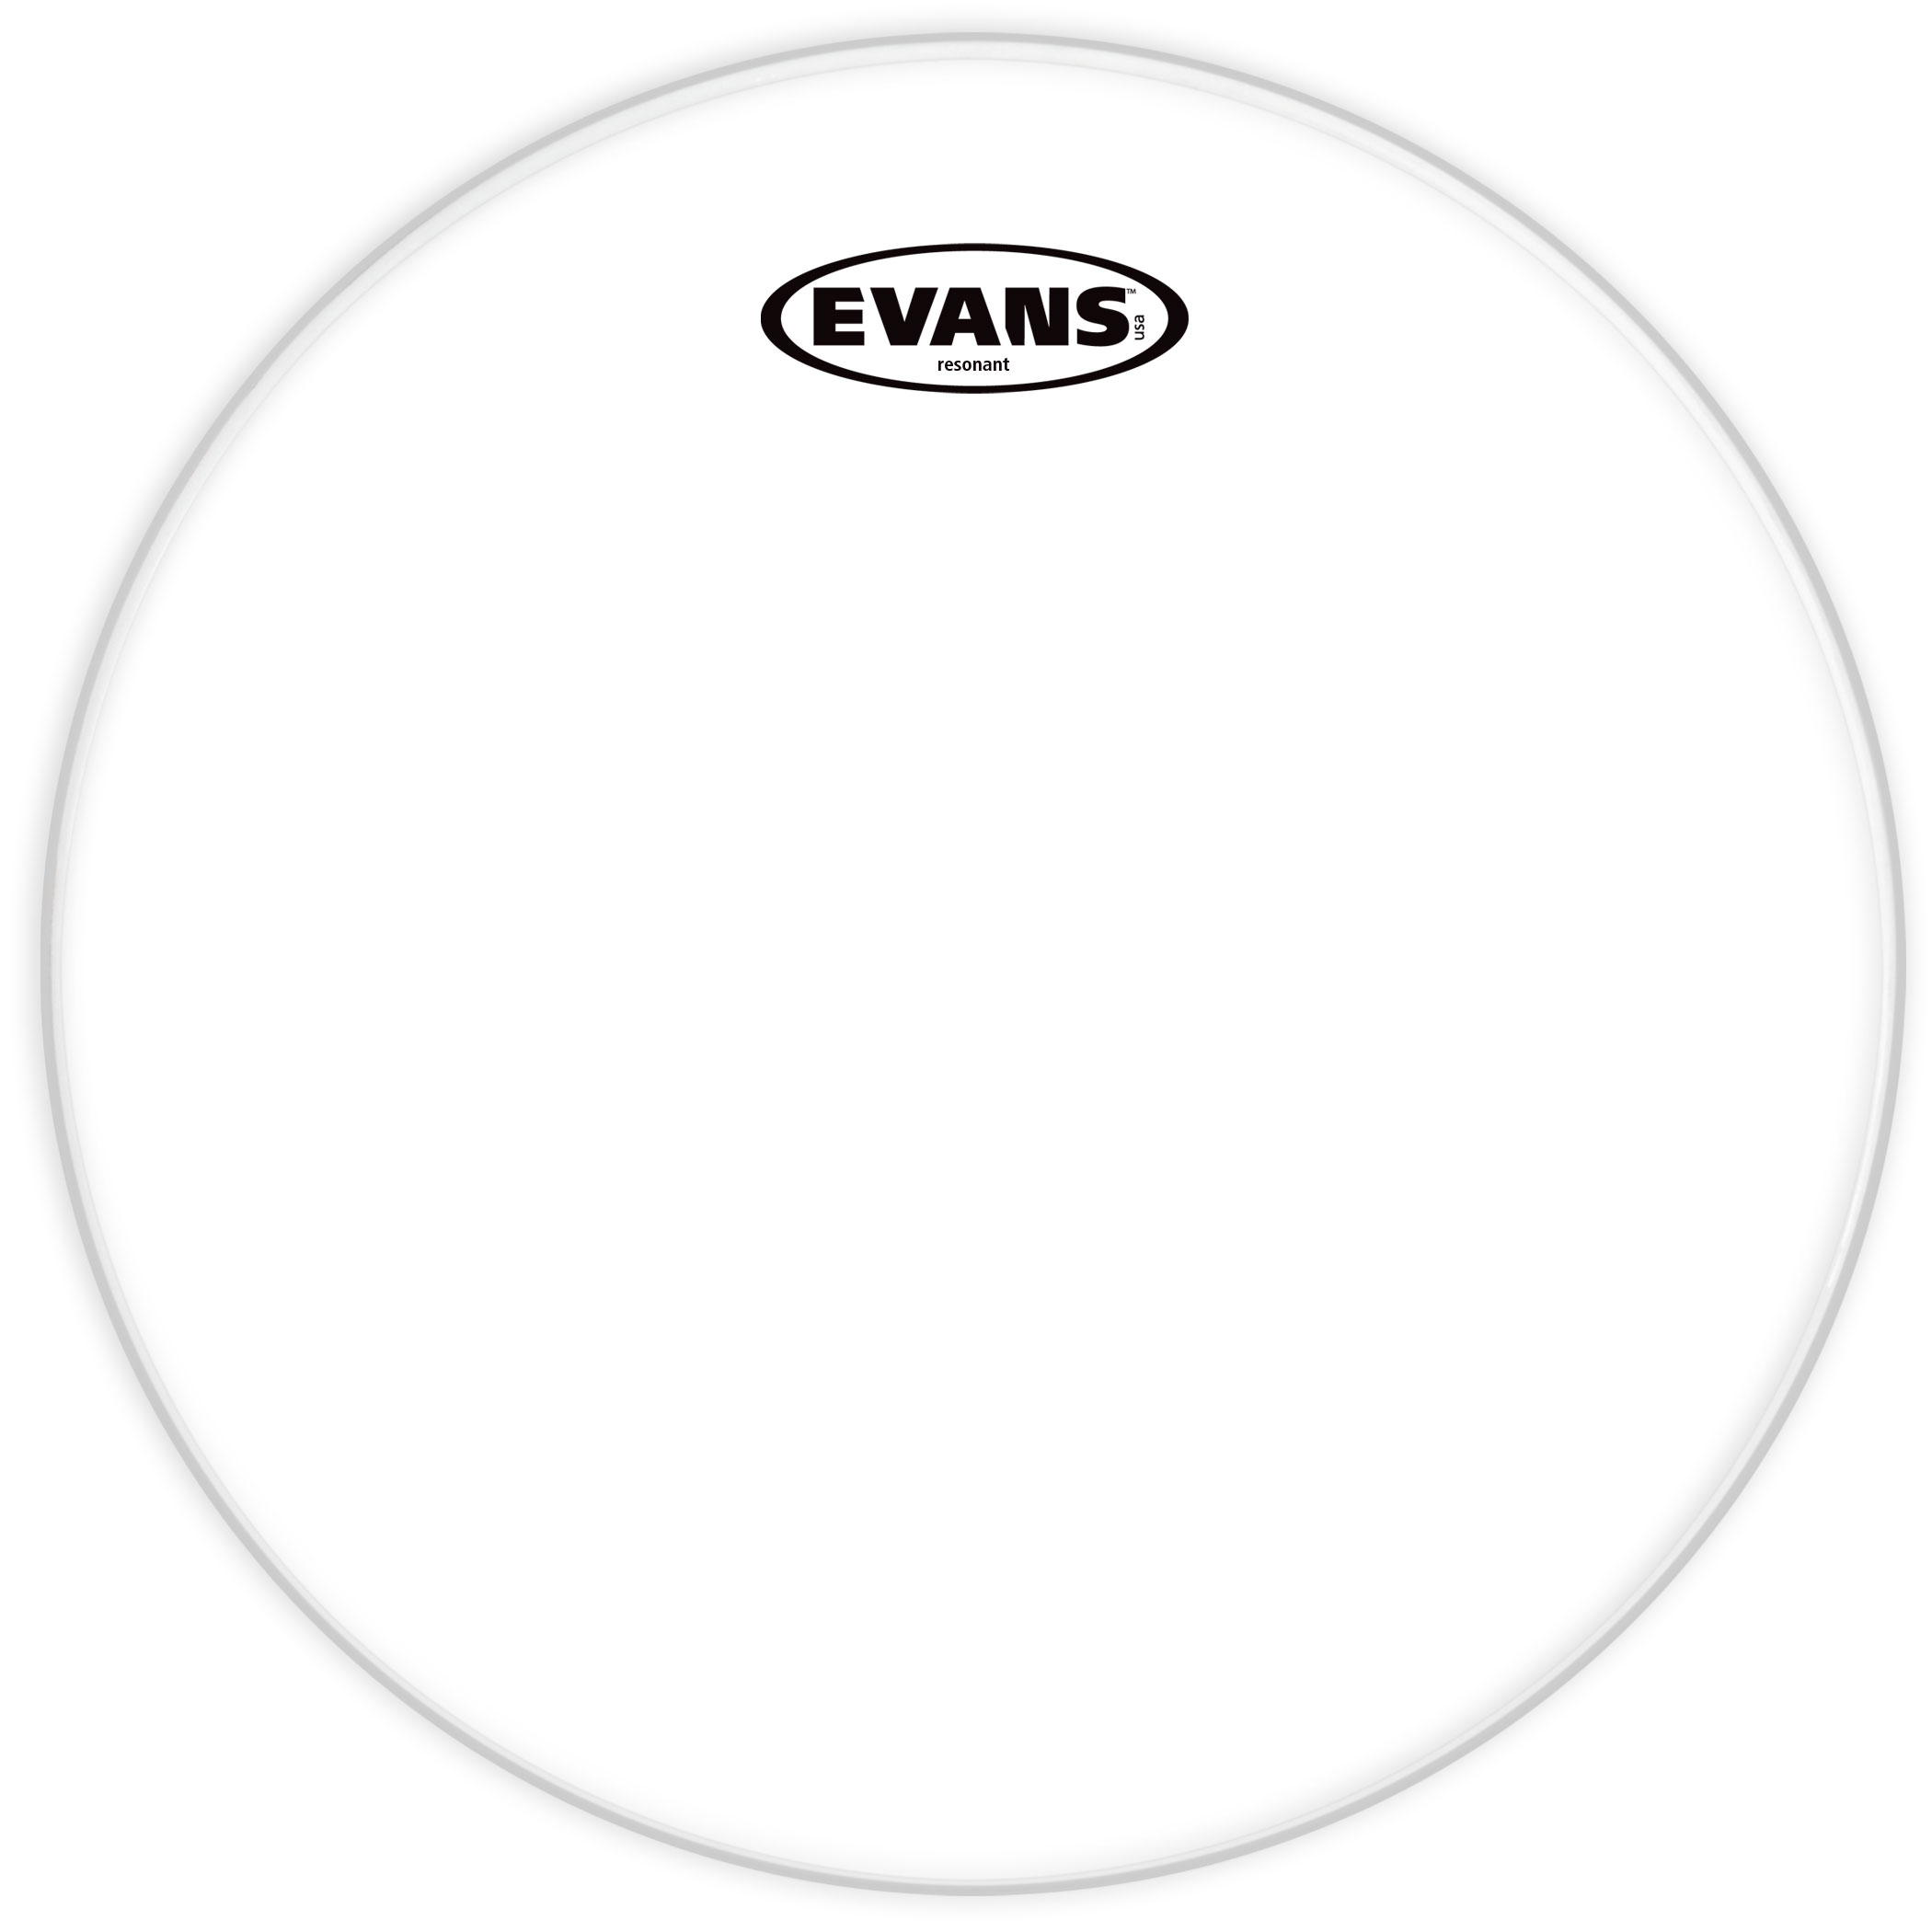 "Evans 8"" Resonant Glass Head"